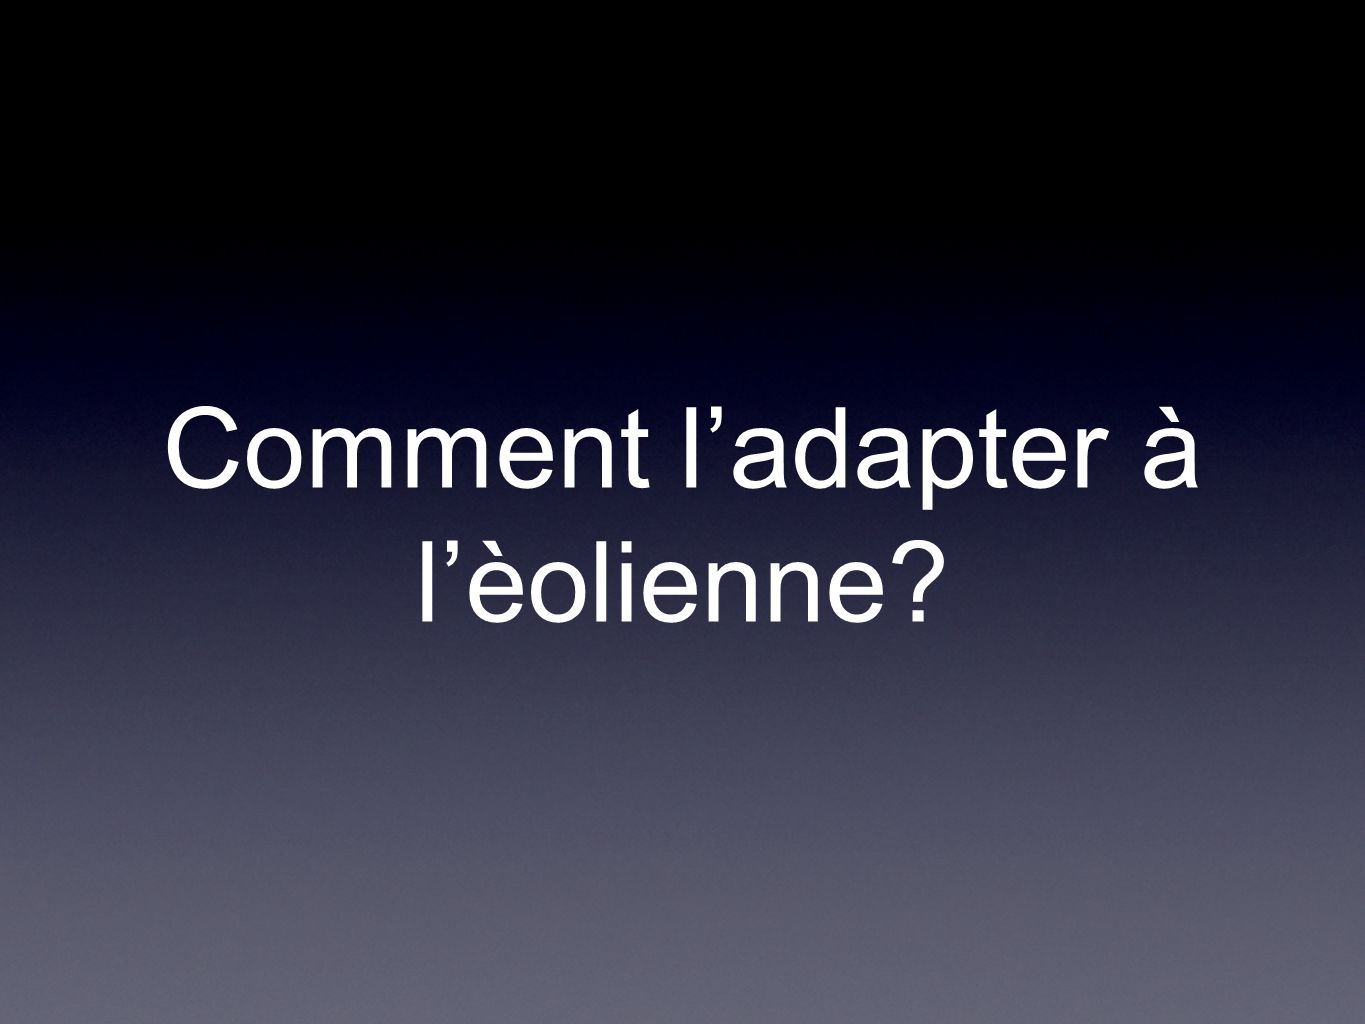 Comment l'adapter à l'èolienne